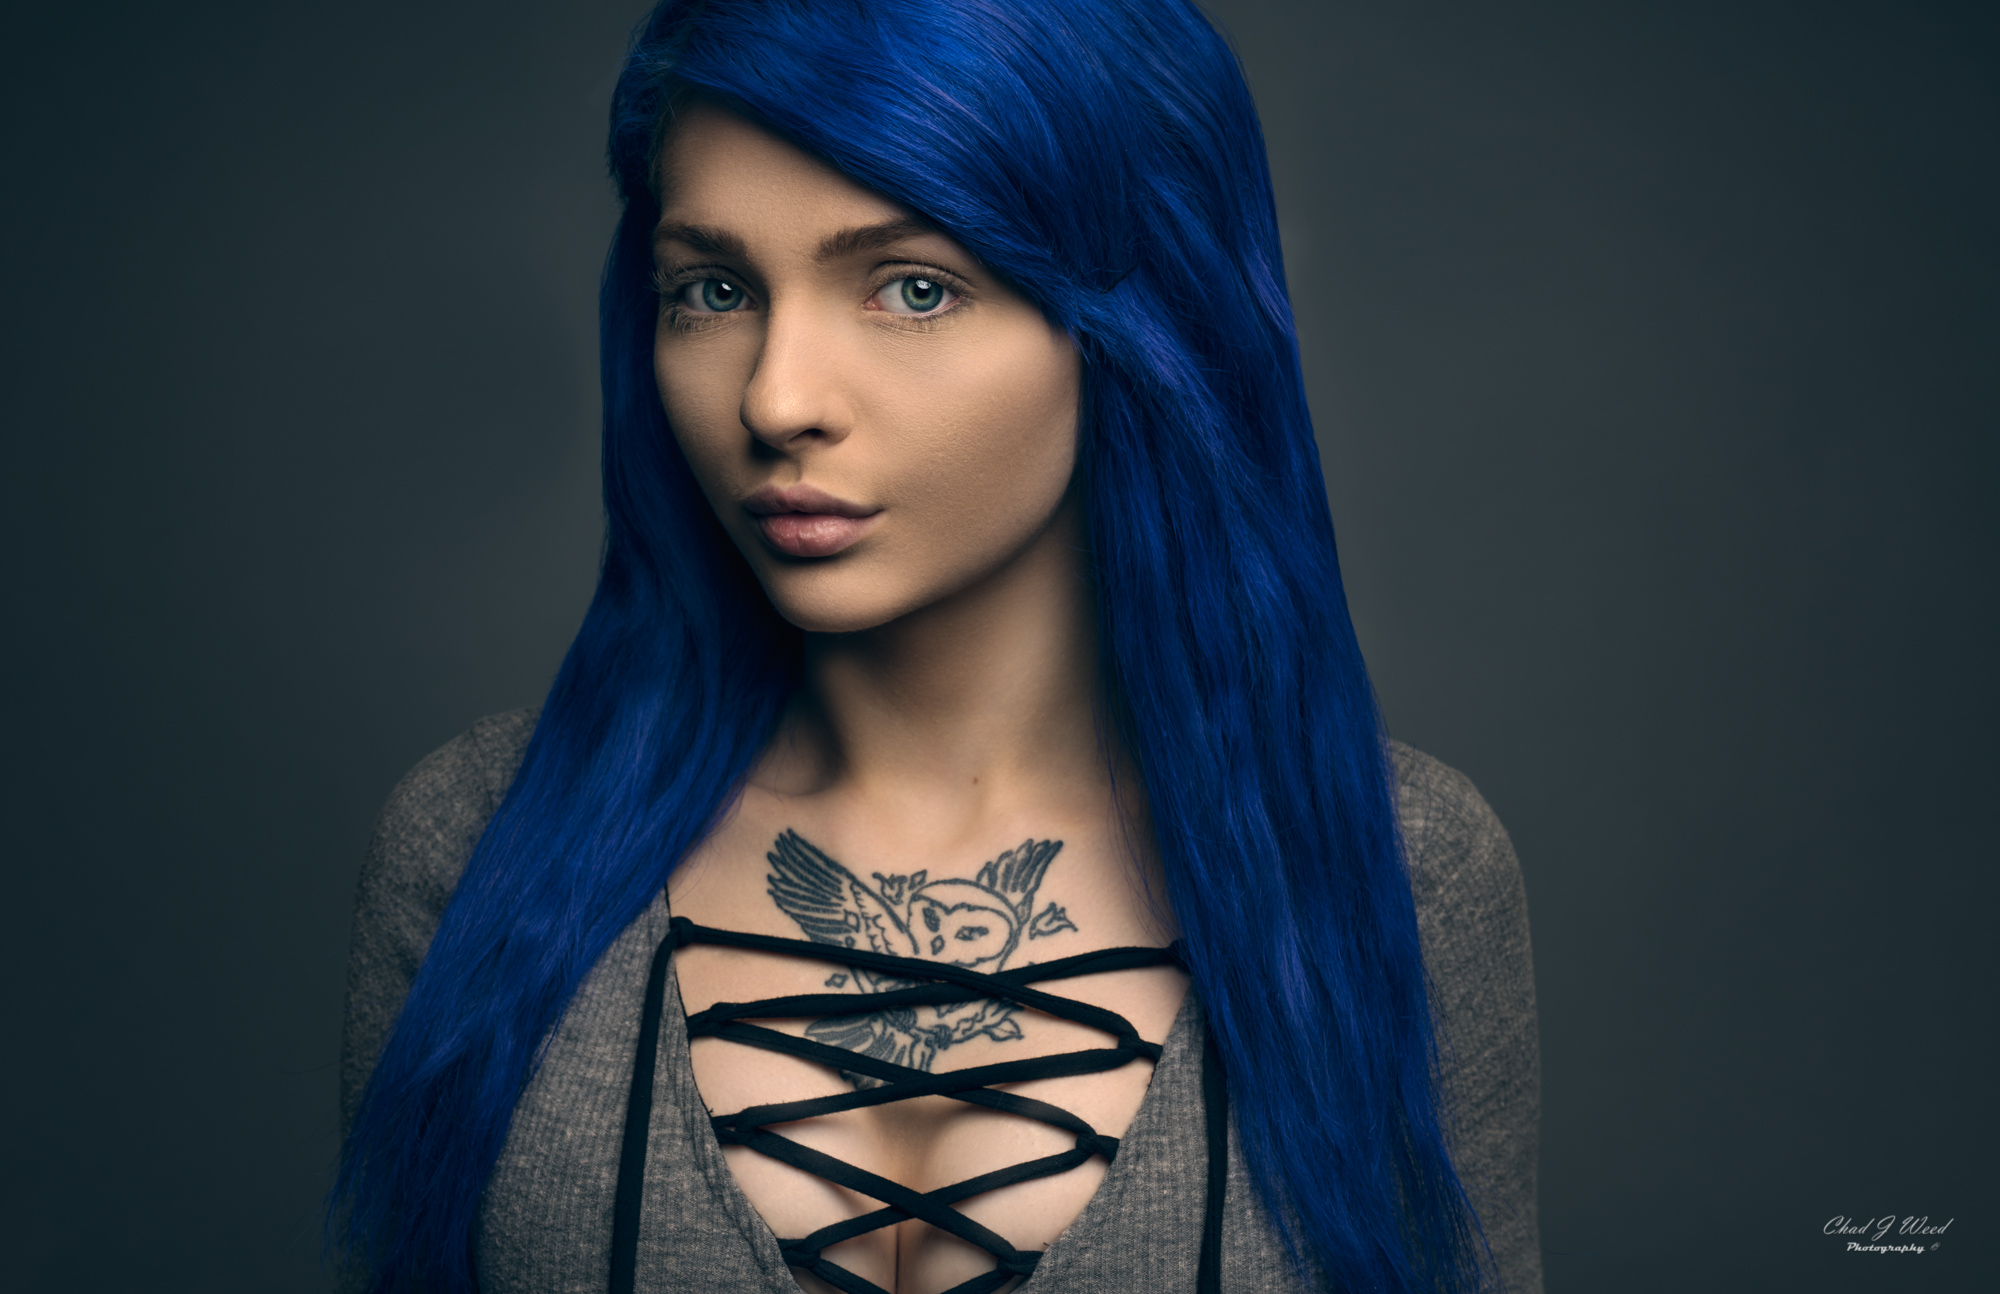 Blue Hair by Mesa Arizona Portrait Photographer Chad Weed